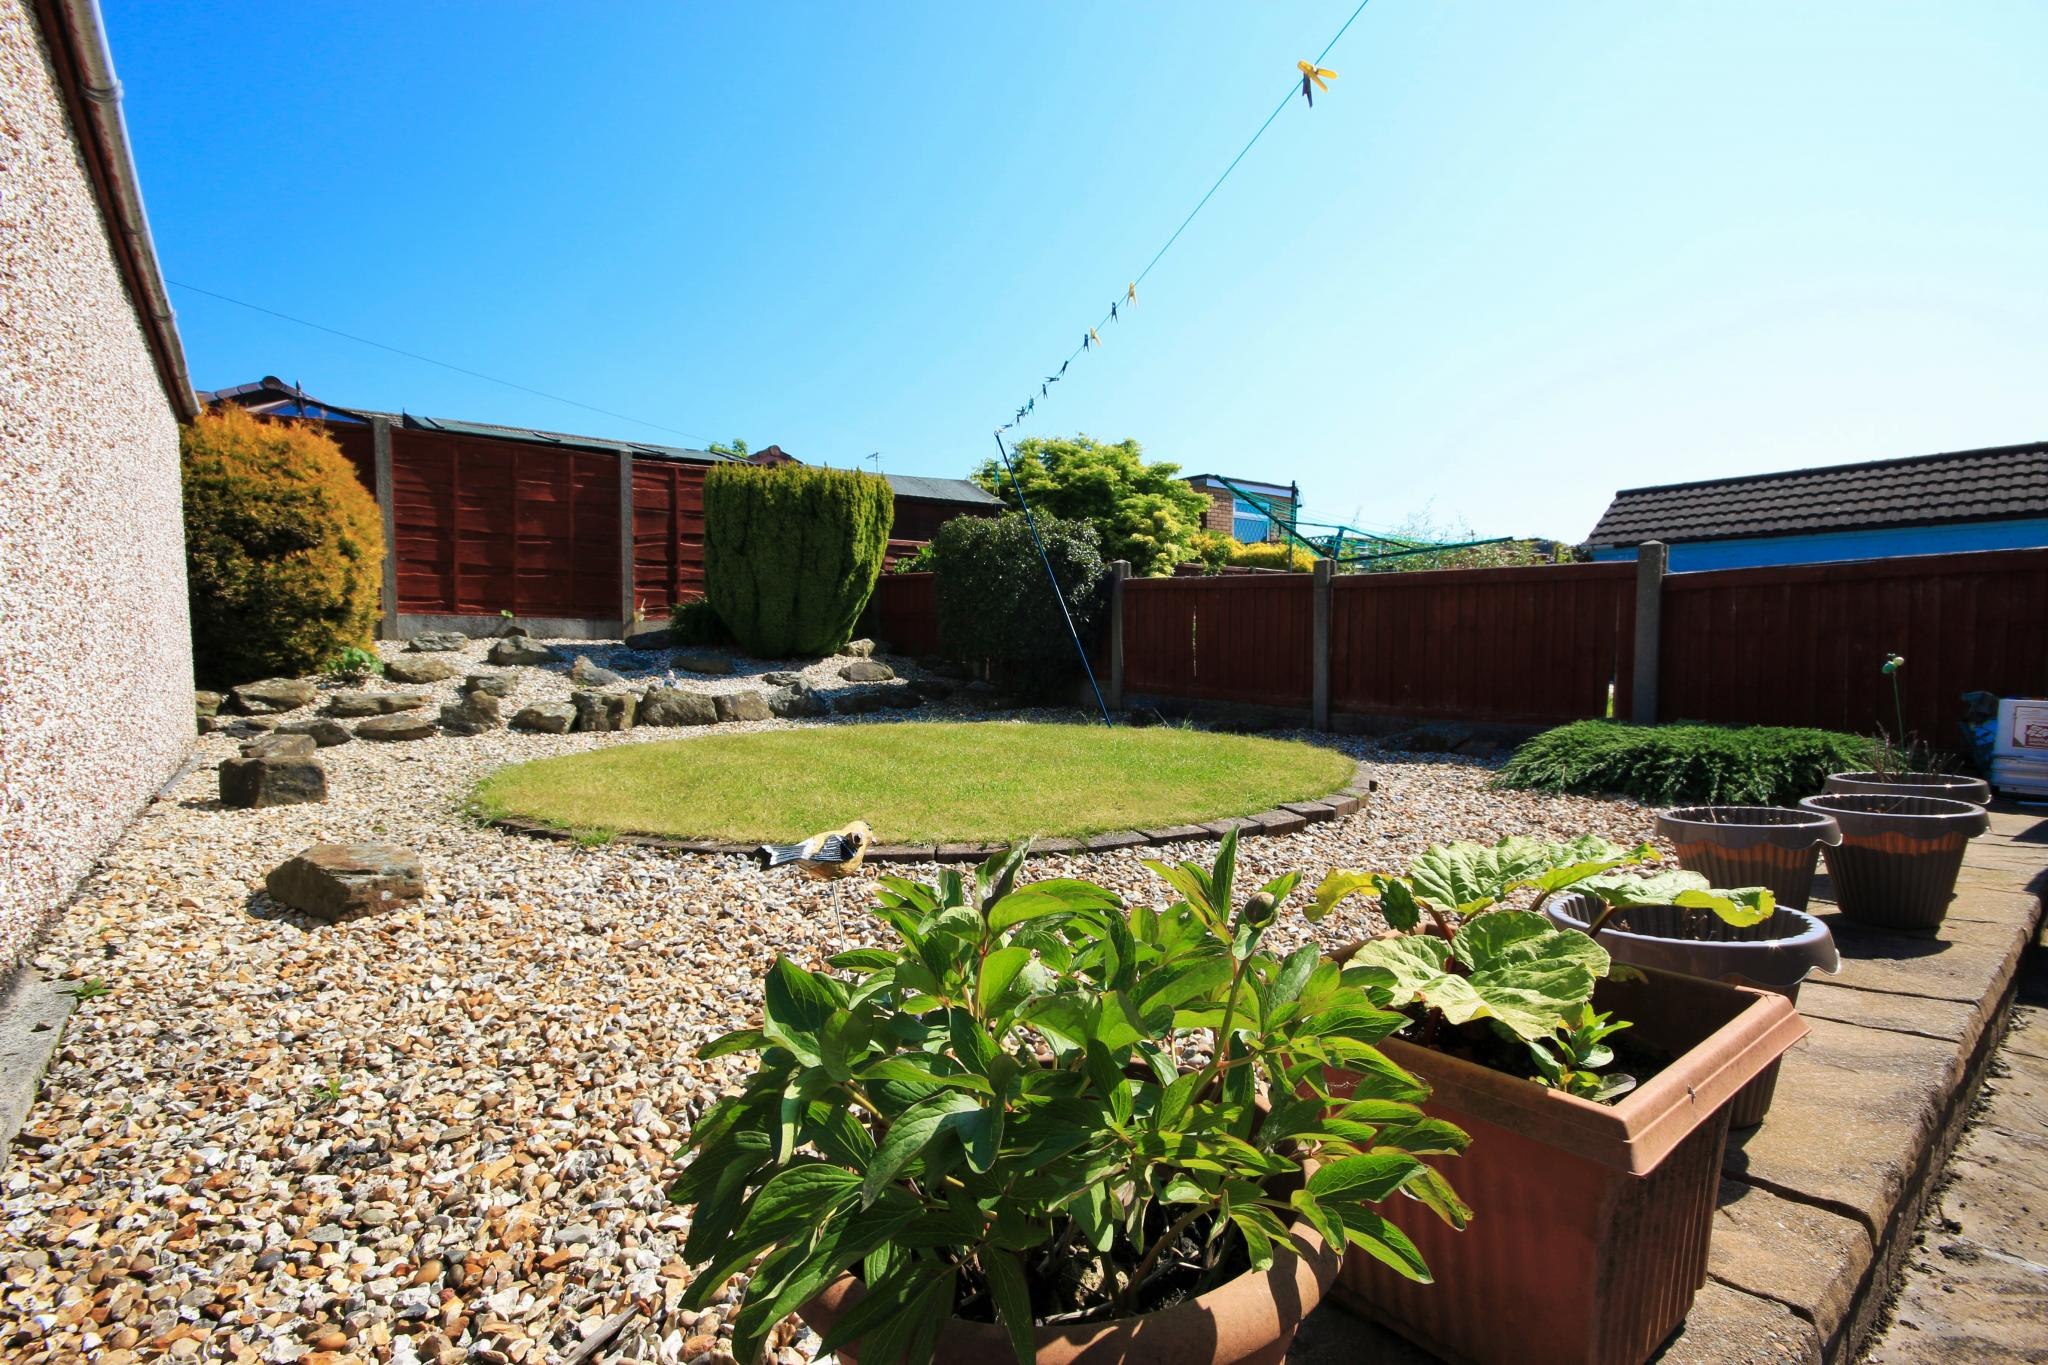 3 Bedroom Semi-detached Bungalow For Sale - Photograph 13